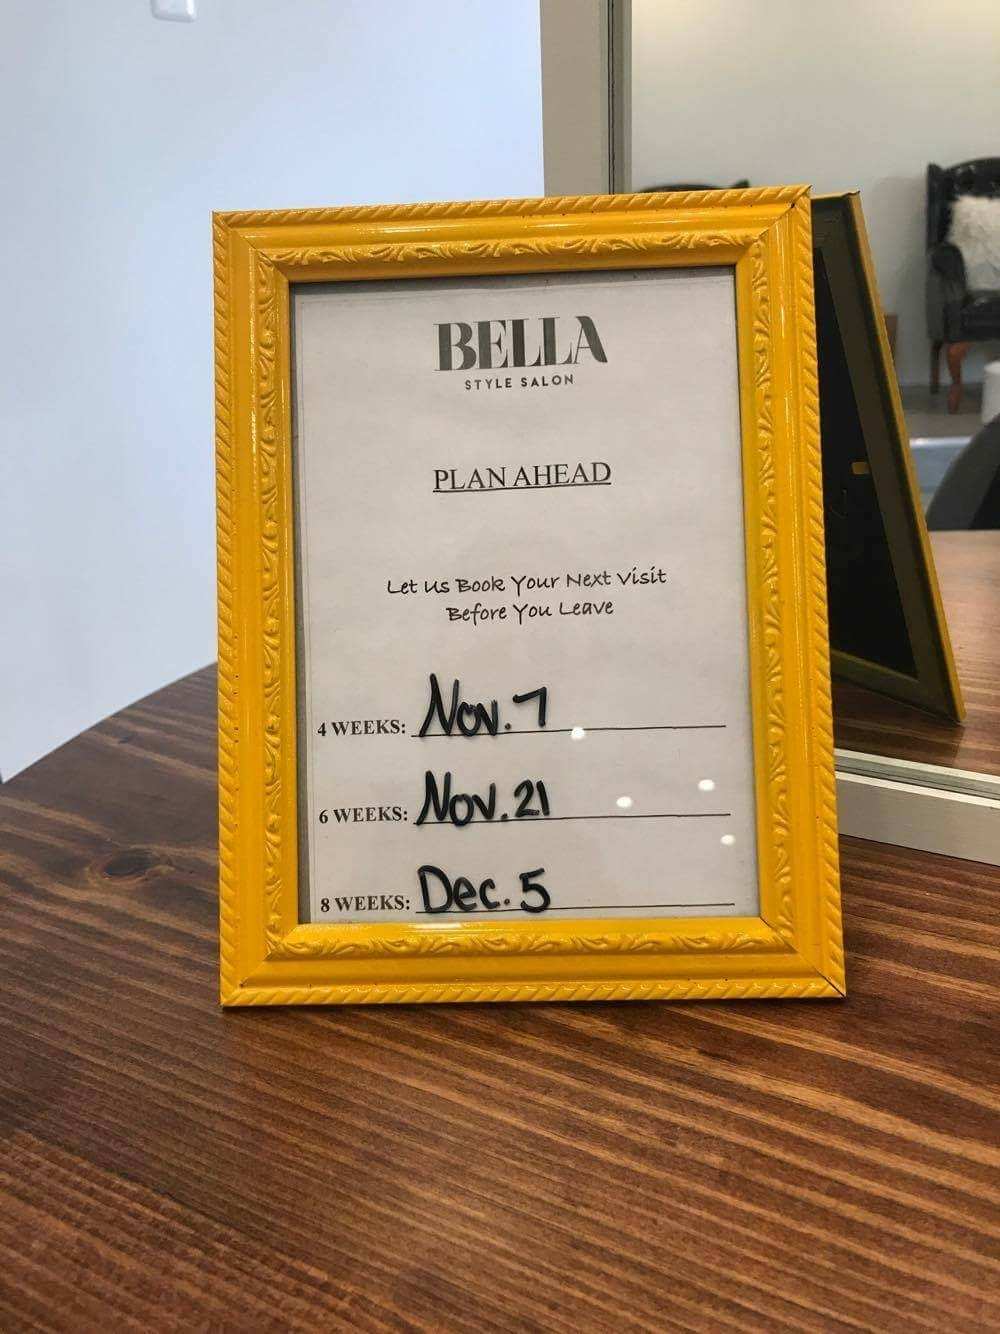 Adopting the idea for the appointment reminders, Baudier put her spin on it by putting them in colorful frames.